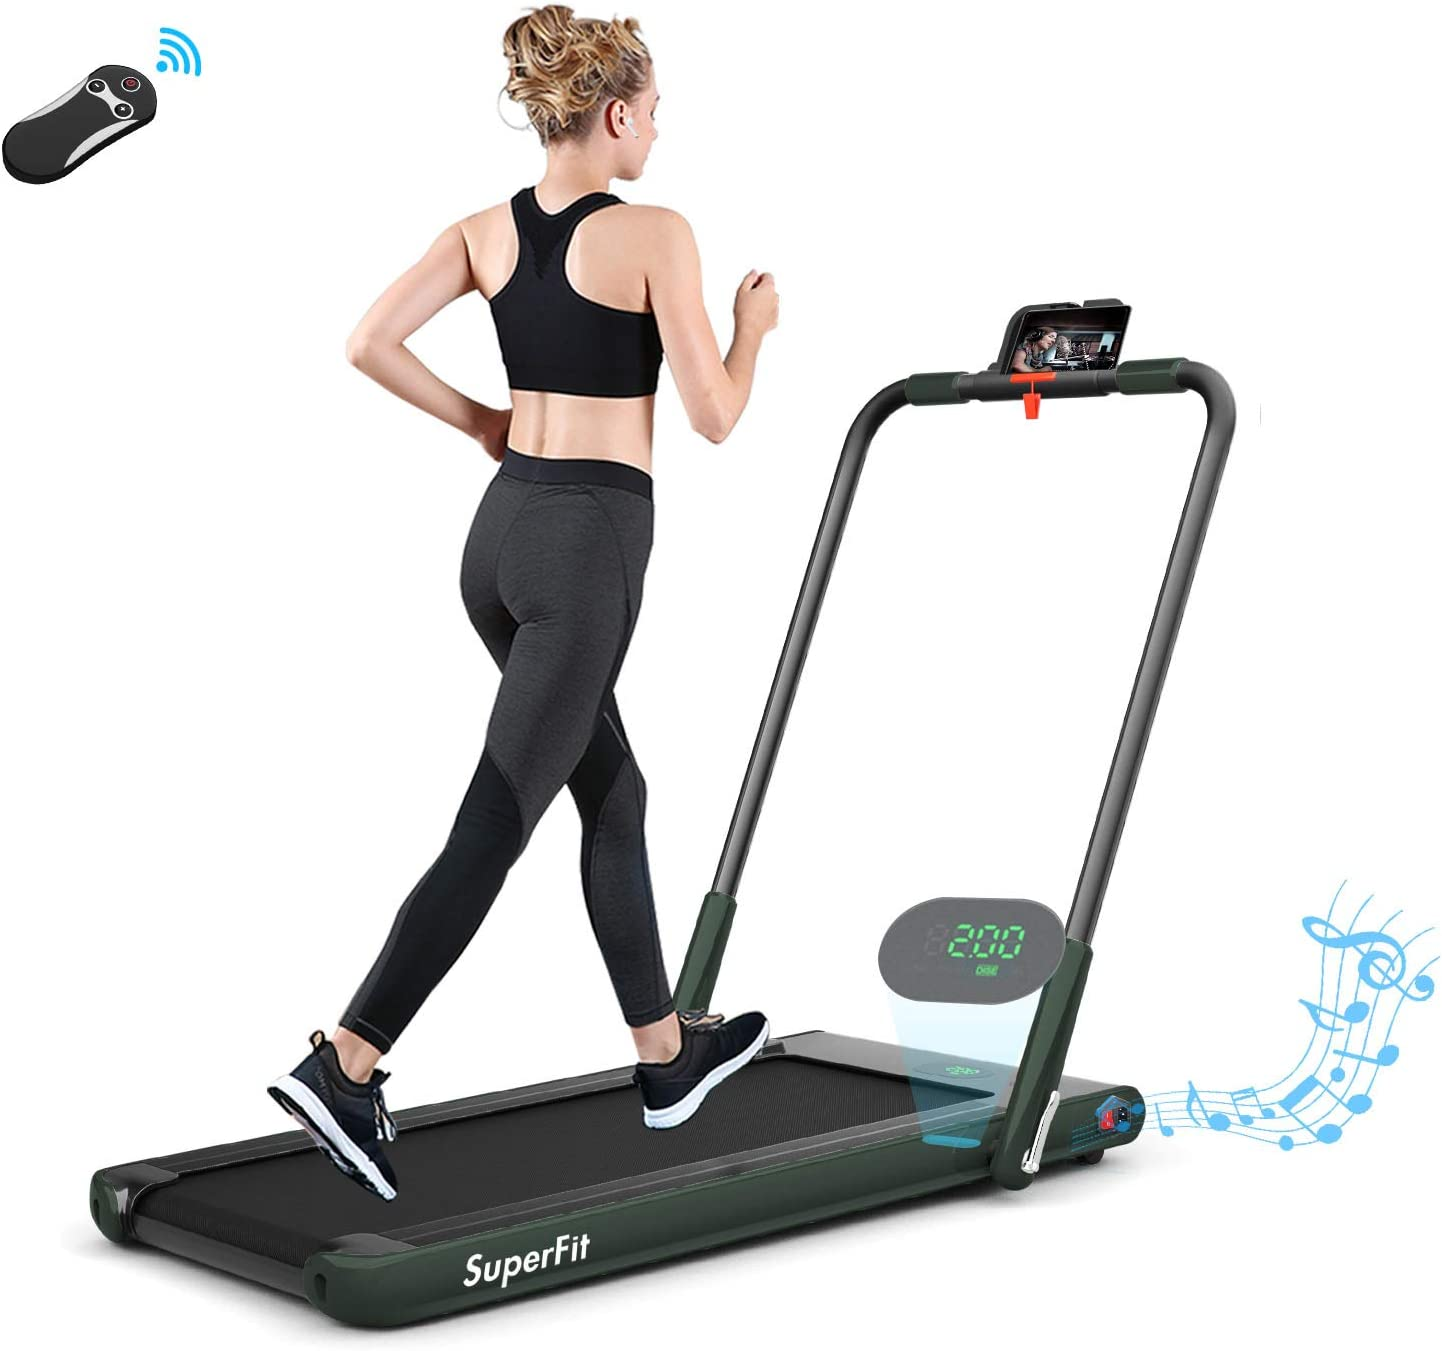 SAFEPLUS Portable Folding Treadmill, 2 in 1 Under Desk Walking Treadmills with Installation-Free Bluetooth Speaker and LED Display,Walking Jogging Machine for Home Office Use